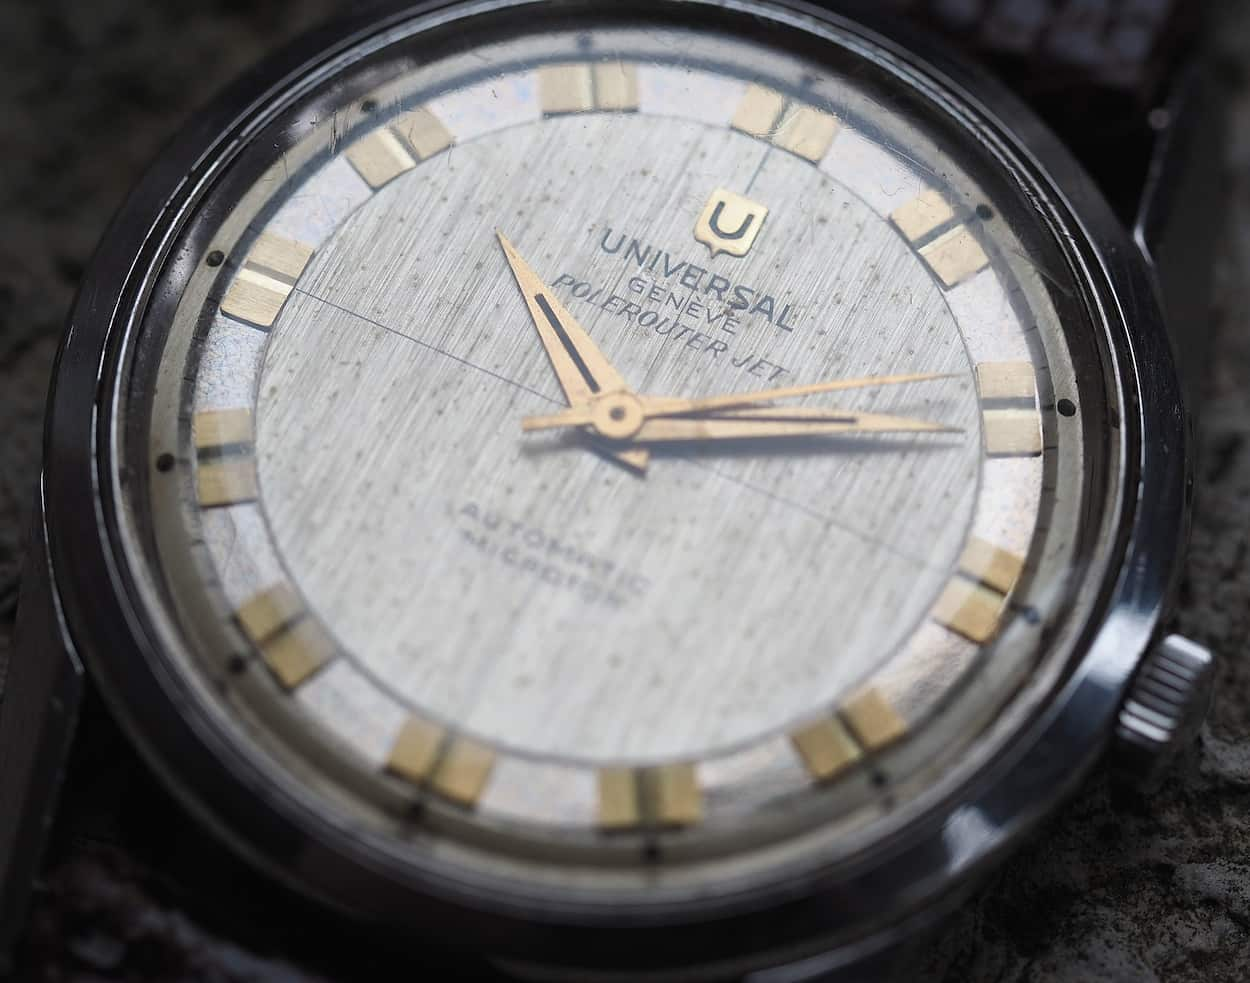 Spotting is normal for vintage dress watches as there wasn't much in the way of water resistance